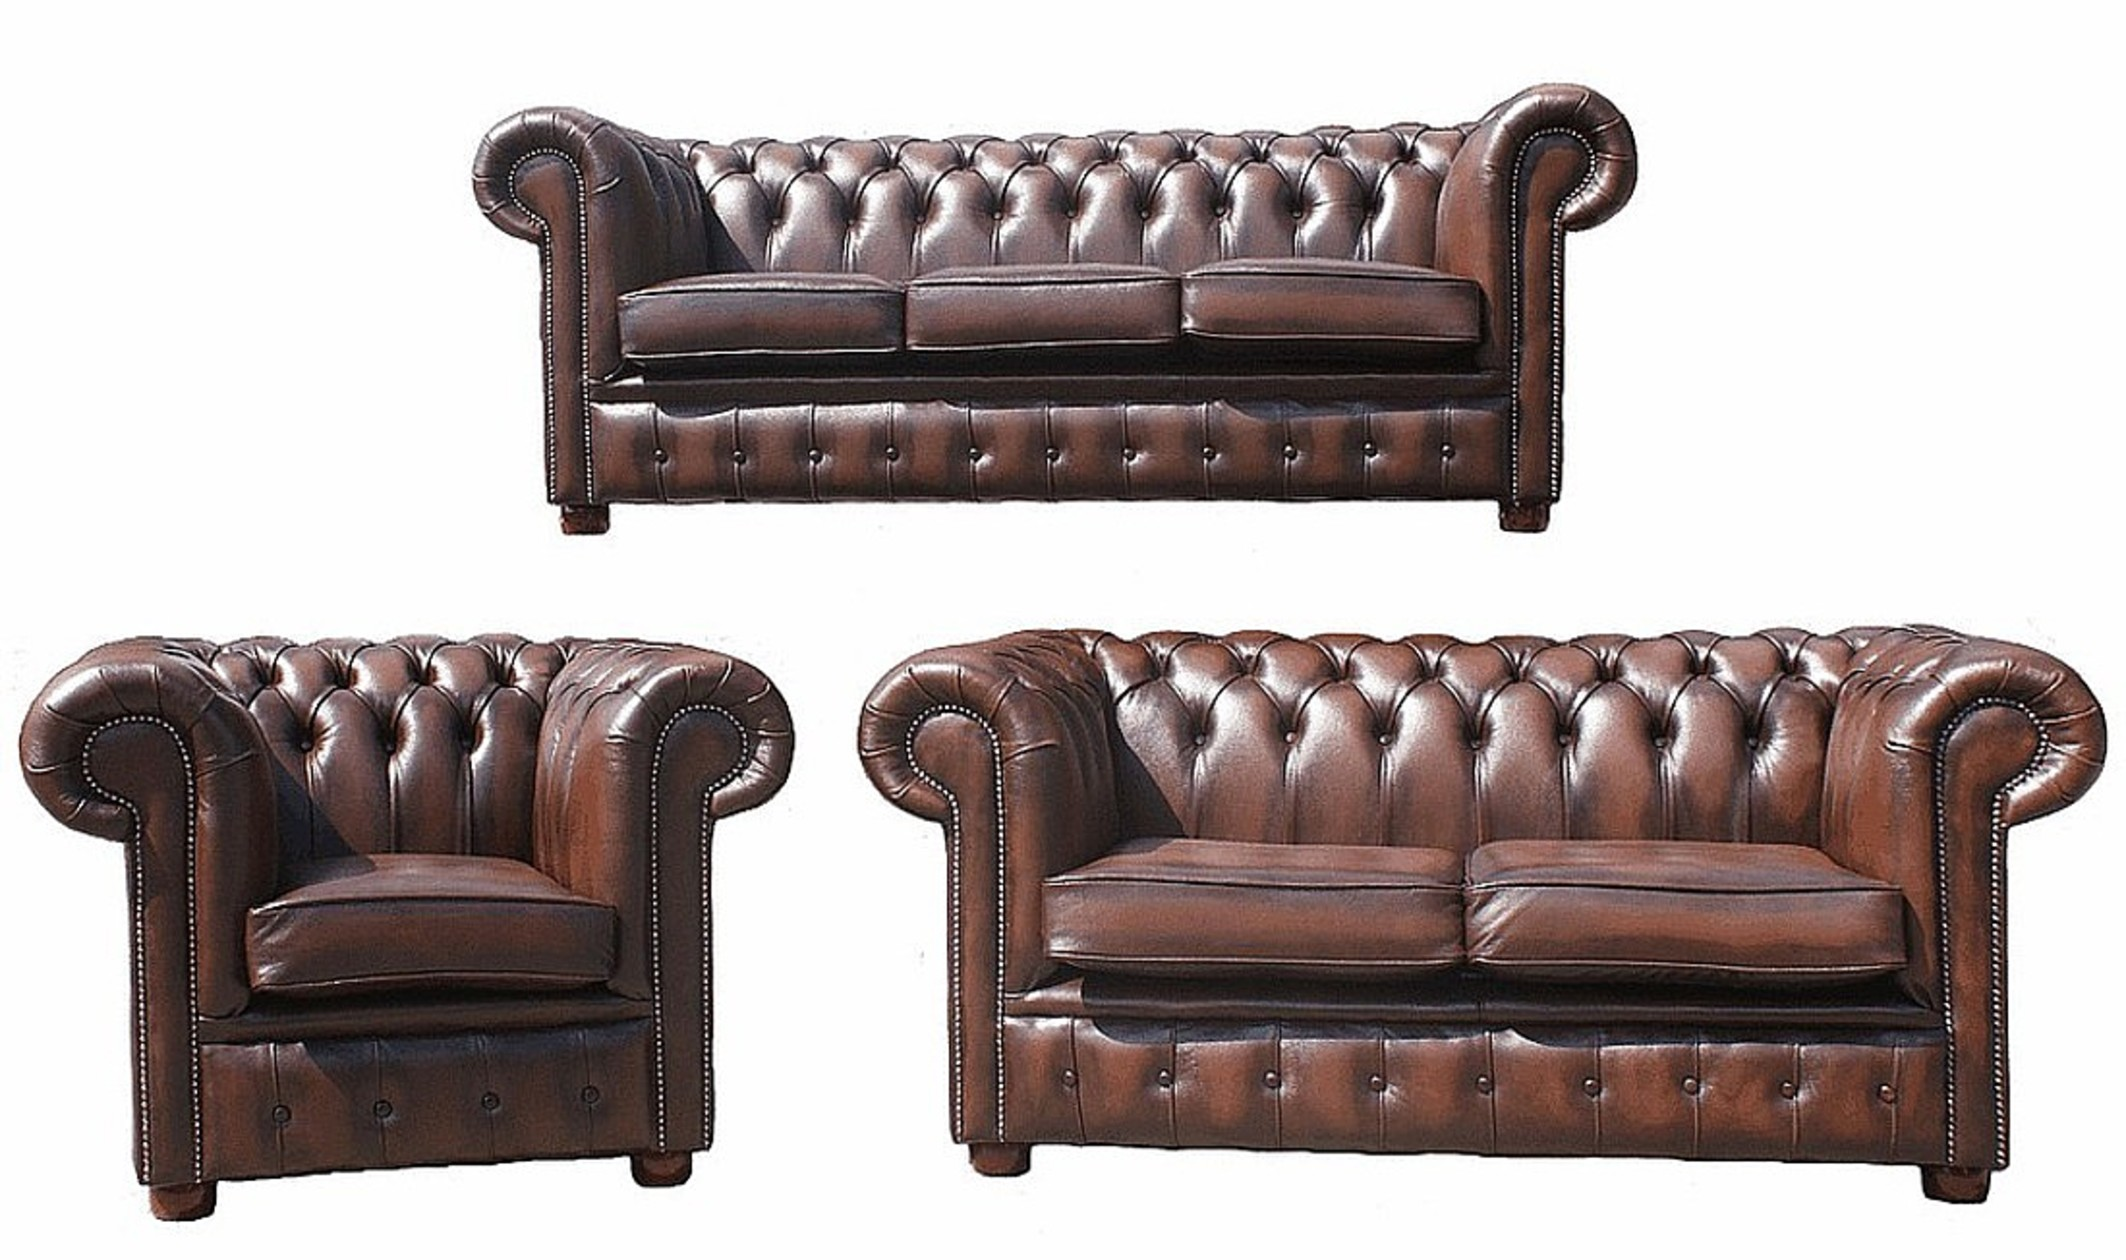 Chesterfield 3+2+1 Leather Sofa Offer Antique Brown, Chesterfield Leather Sofa, UK Manufactured, Leather Sofas, Traditional Sofas